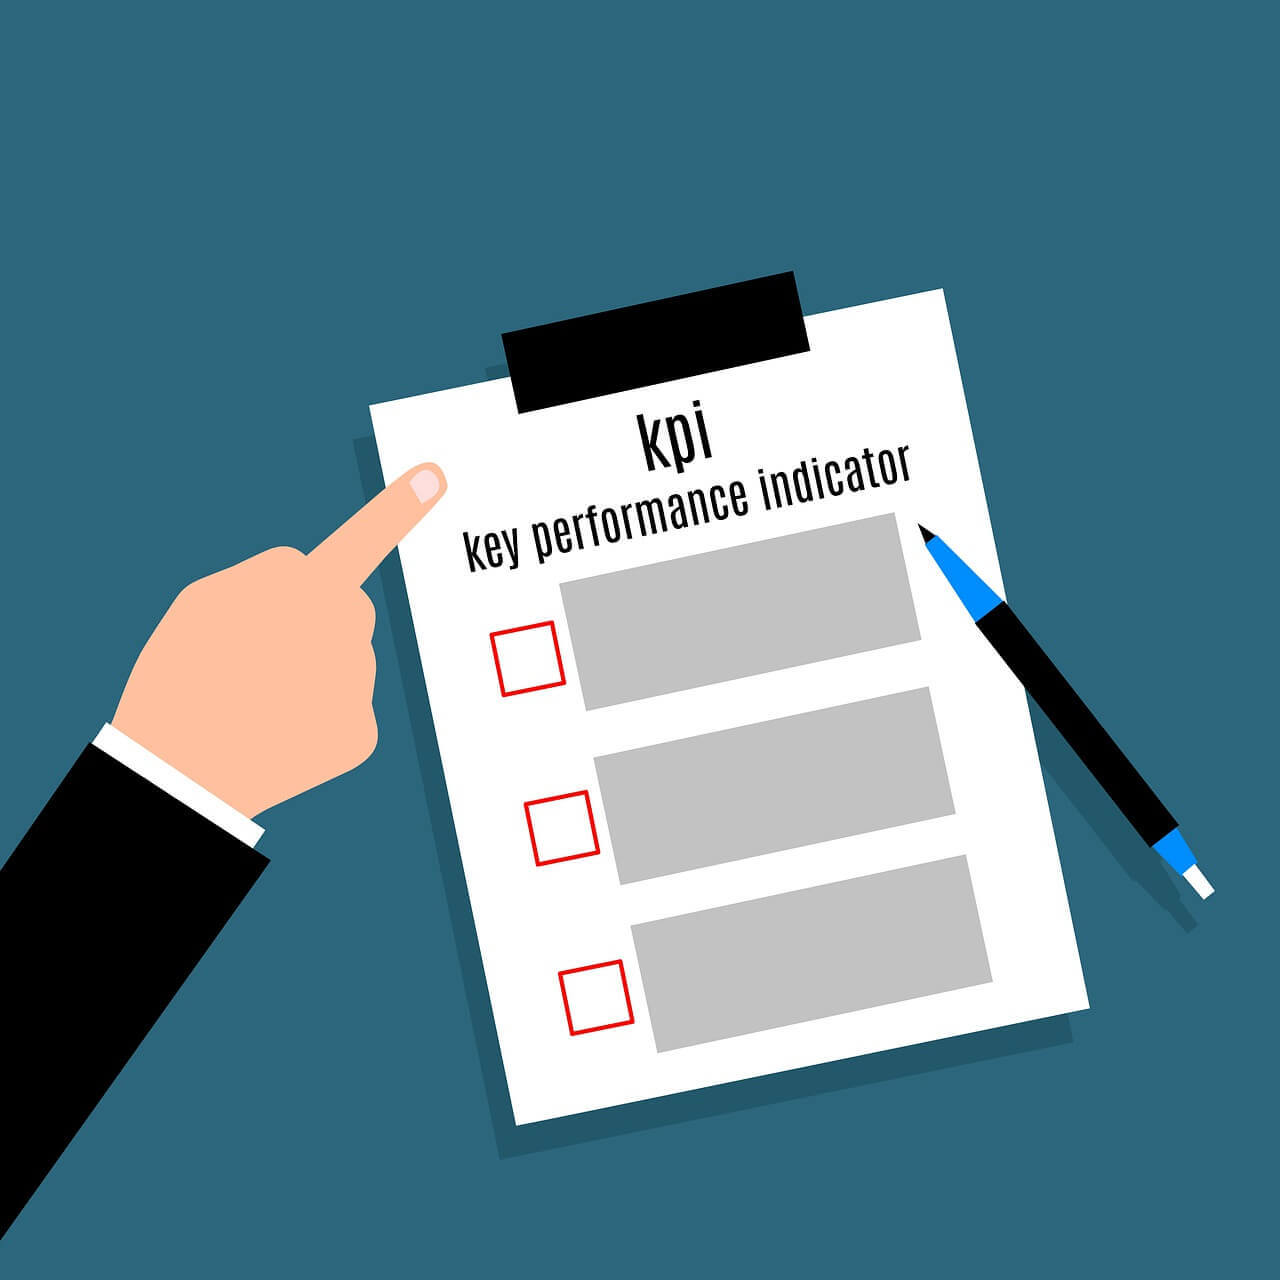 A paper on clipboard saying *KPI* with a checkable list and a pen placed on it. An arm is pointing towards it.